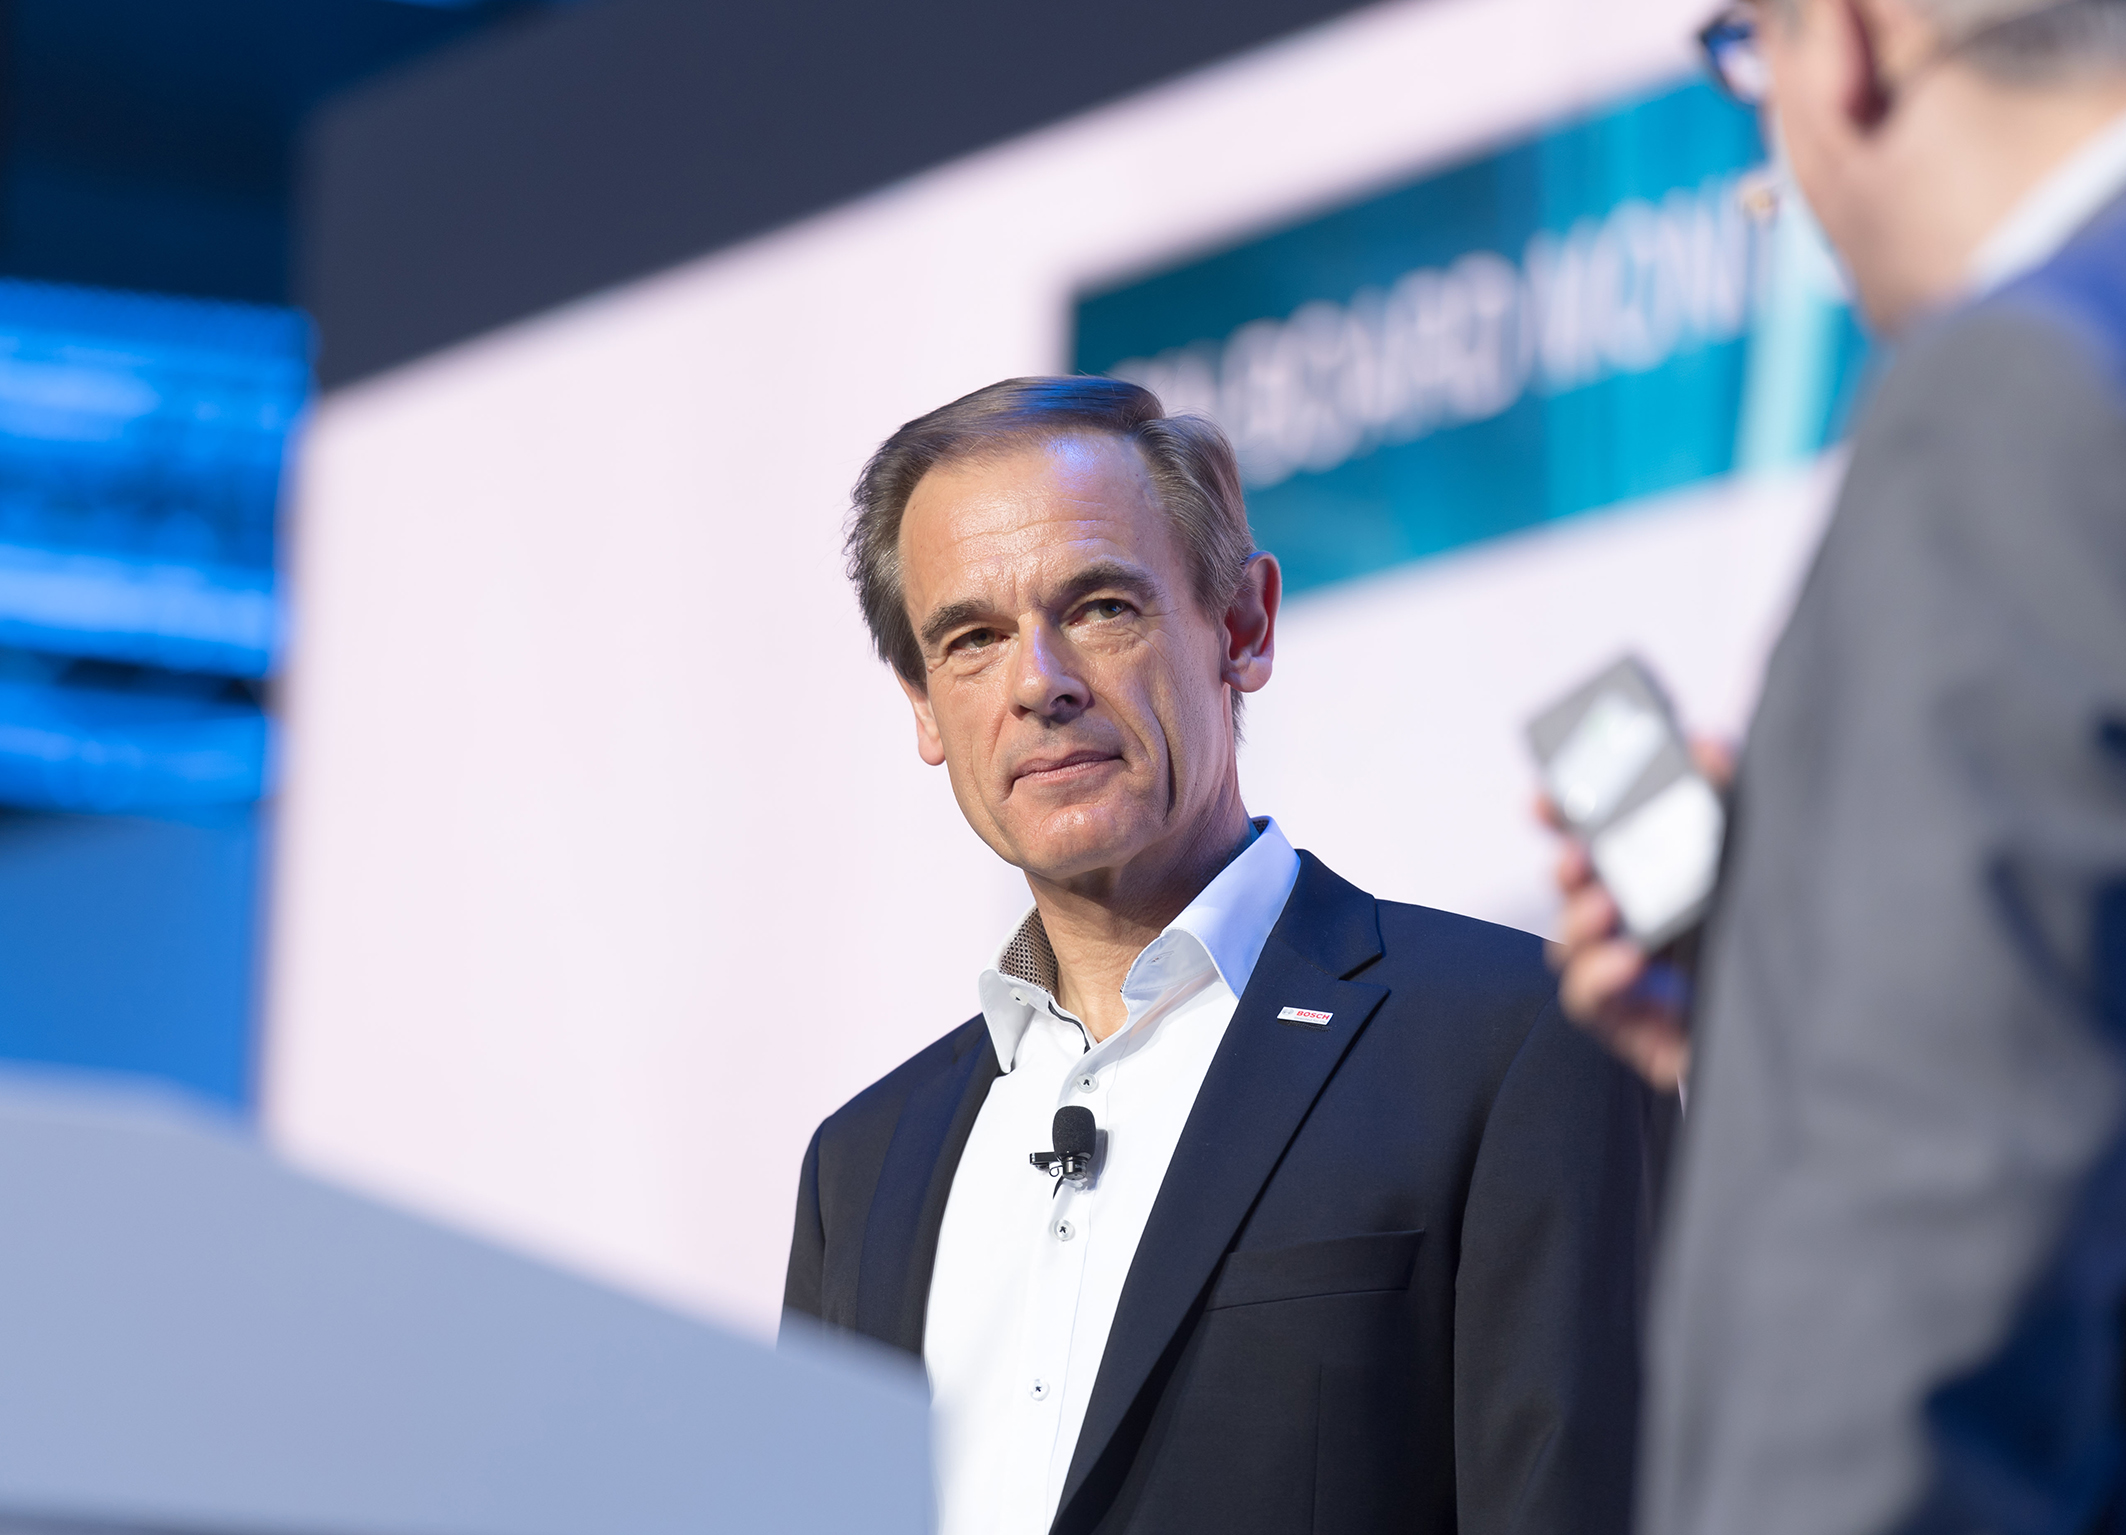 Taking the IoT to the next level: Bosch CEO Dr. Volkmar Denner, Keynote Taking the IoT to the next level, Bosch ConnectedWorld 2017